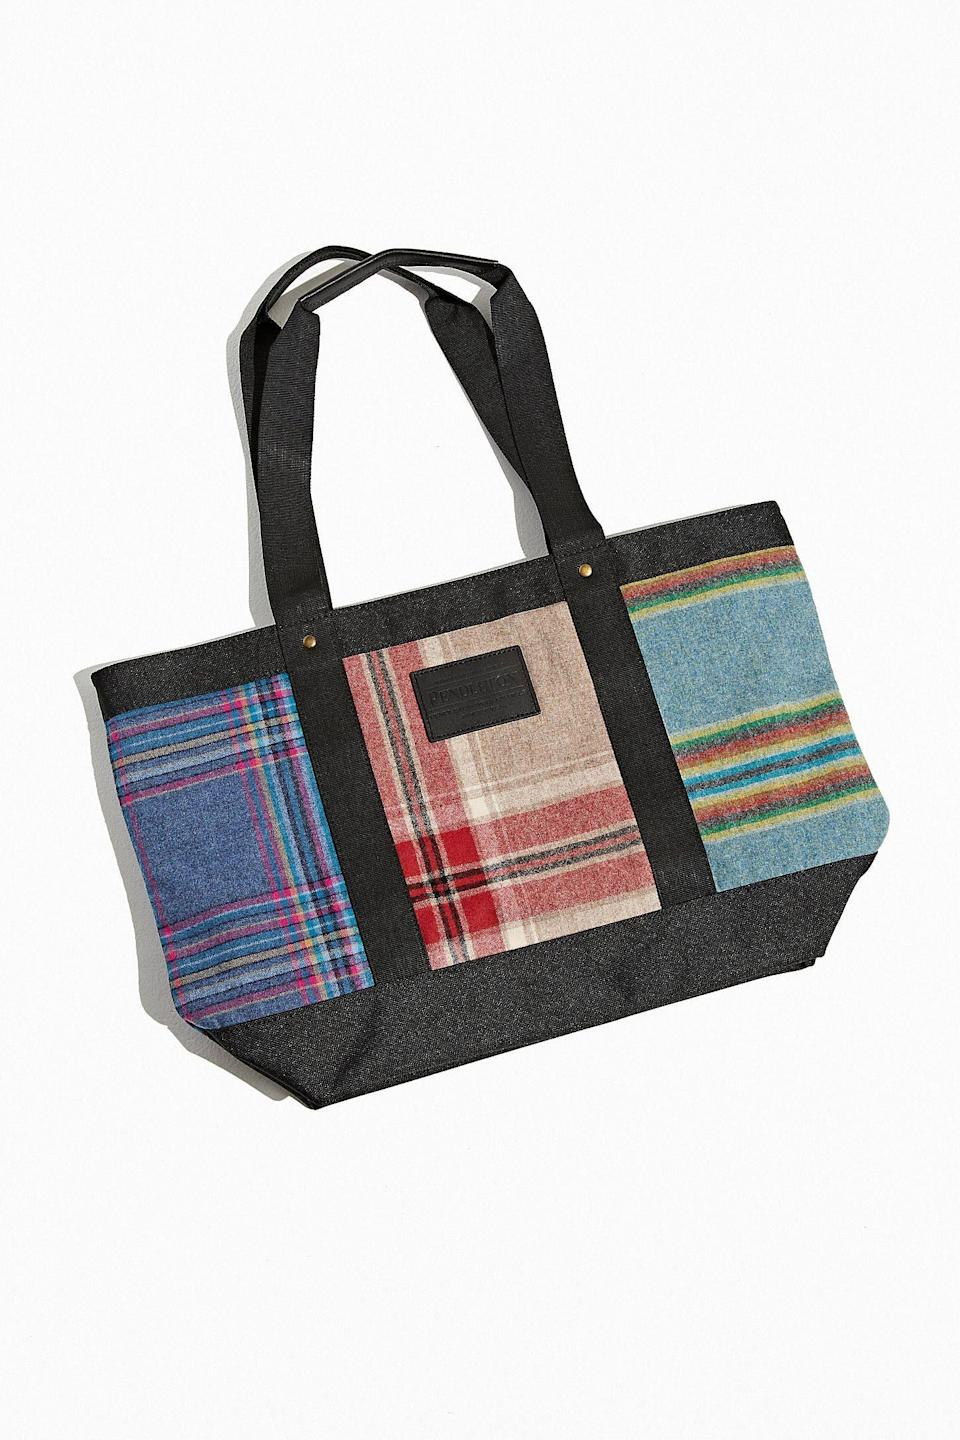 """<p><strong>Pendleton</strong></p><p>urbanoutfitters.com</p><p><strong>$132.00</strong></p><p><a href=""""https://go.redirectingat.com?id=74968X1596630&url=https%3A%2F%2Fwww.urbanoutfitters.com%2Fshop%2Fpendleton-uo-exclusive-patchwork-tote-bag&sref=https%3A%2F%2Fwww.thepioneerwoman.com%2Ffashion-style%2Fg35005568%2Fcute-tote-bags%2F"""" rel=""""nofollow noopener"""" target=""""_blank"""" data-ylk=""""slk:Shop Now"""" class=""""link rapid-noclick-resp"""">Shop Now</a></p><p>Ree loves a good Pendleton blanket, so it's easy to imagine her toting around this plaid carryall from the brand. Does it not remind you of a comfy flannel shirt in bag form? </p>"""